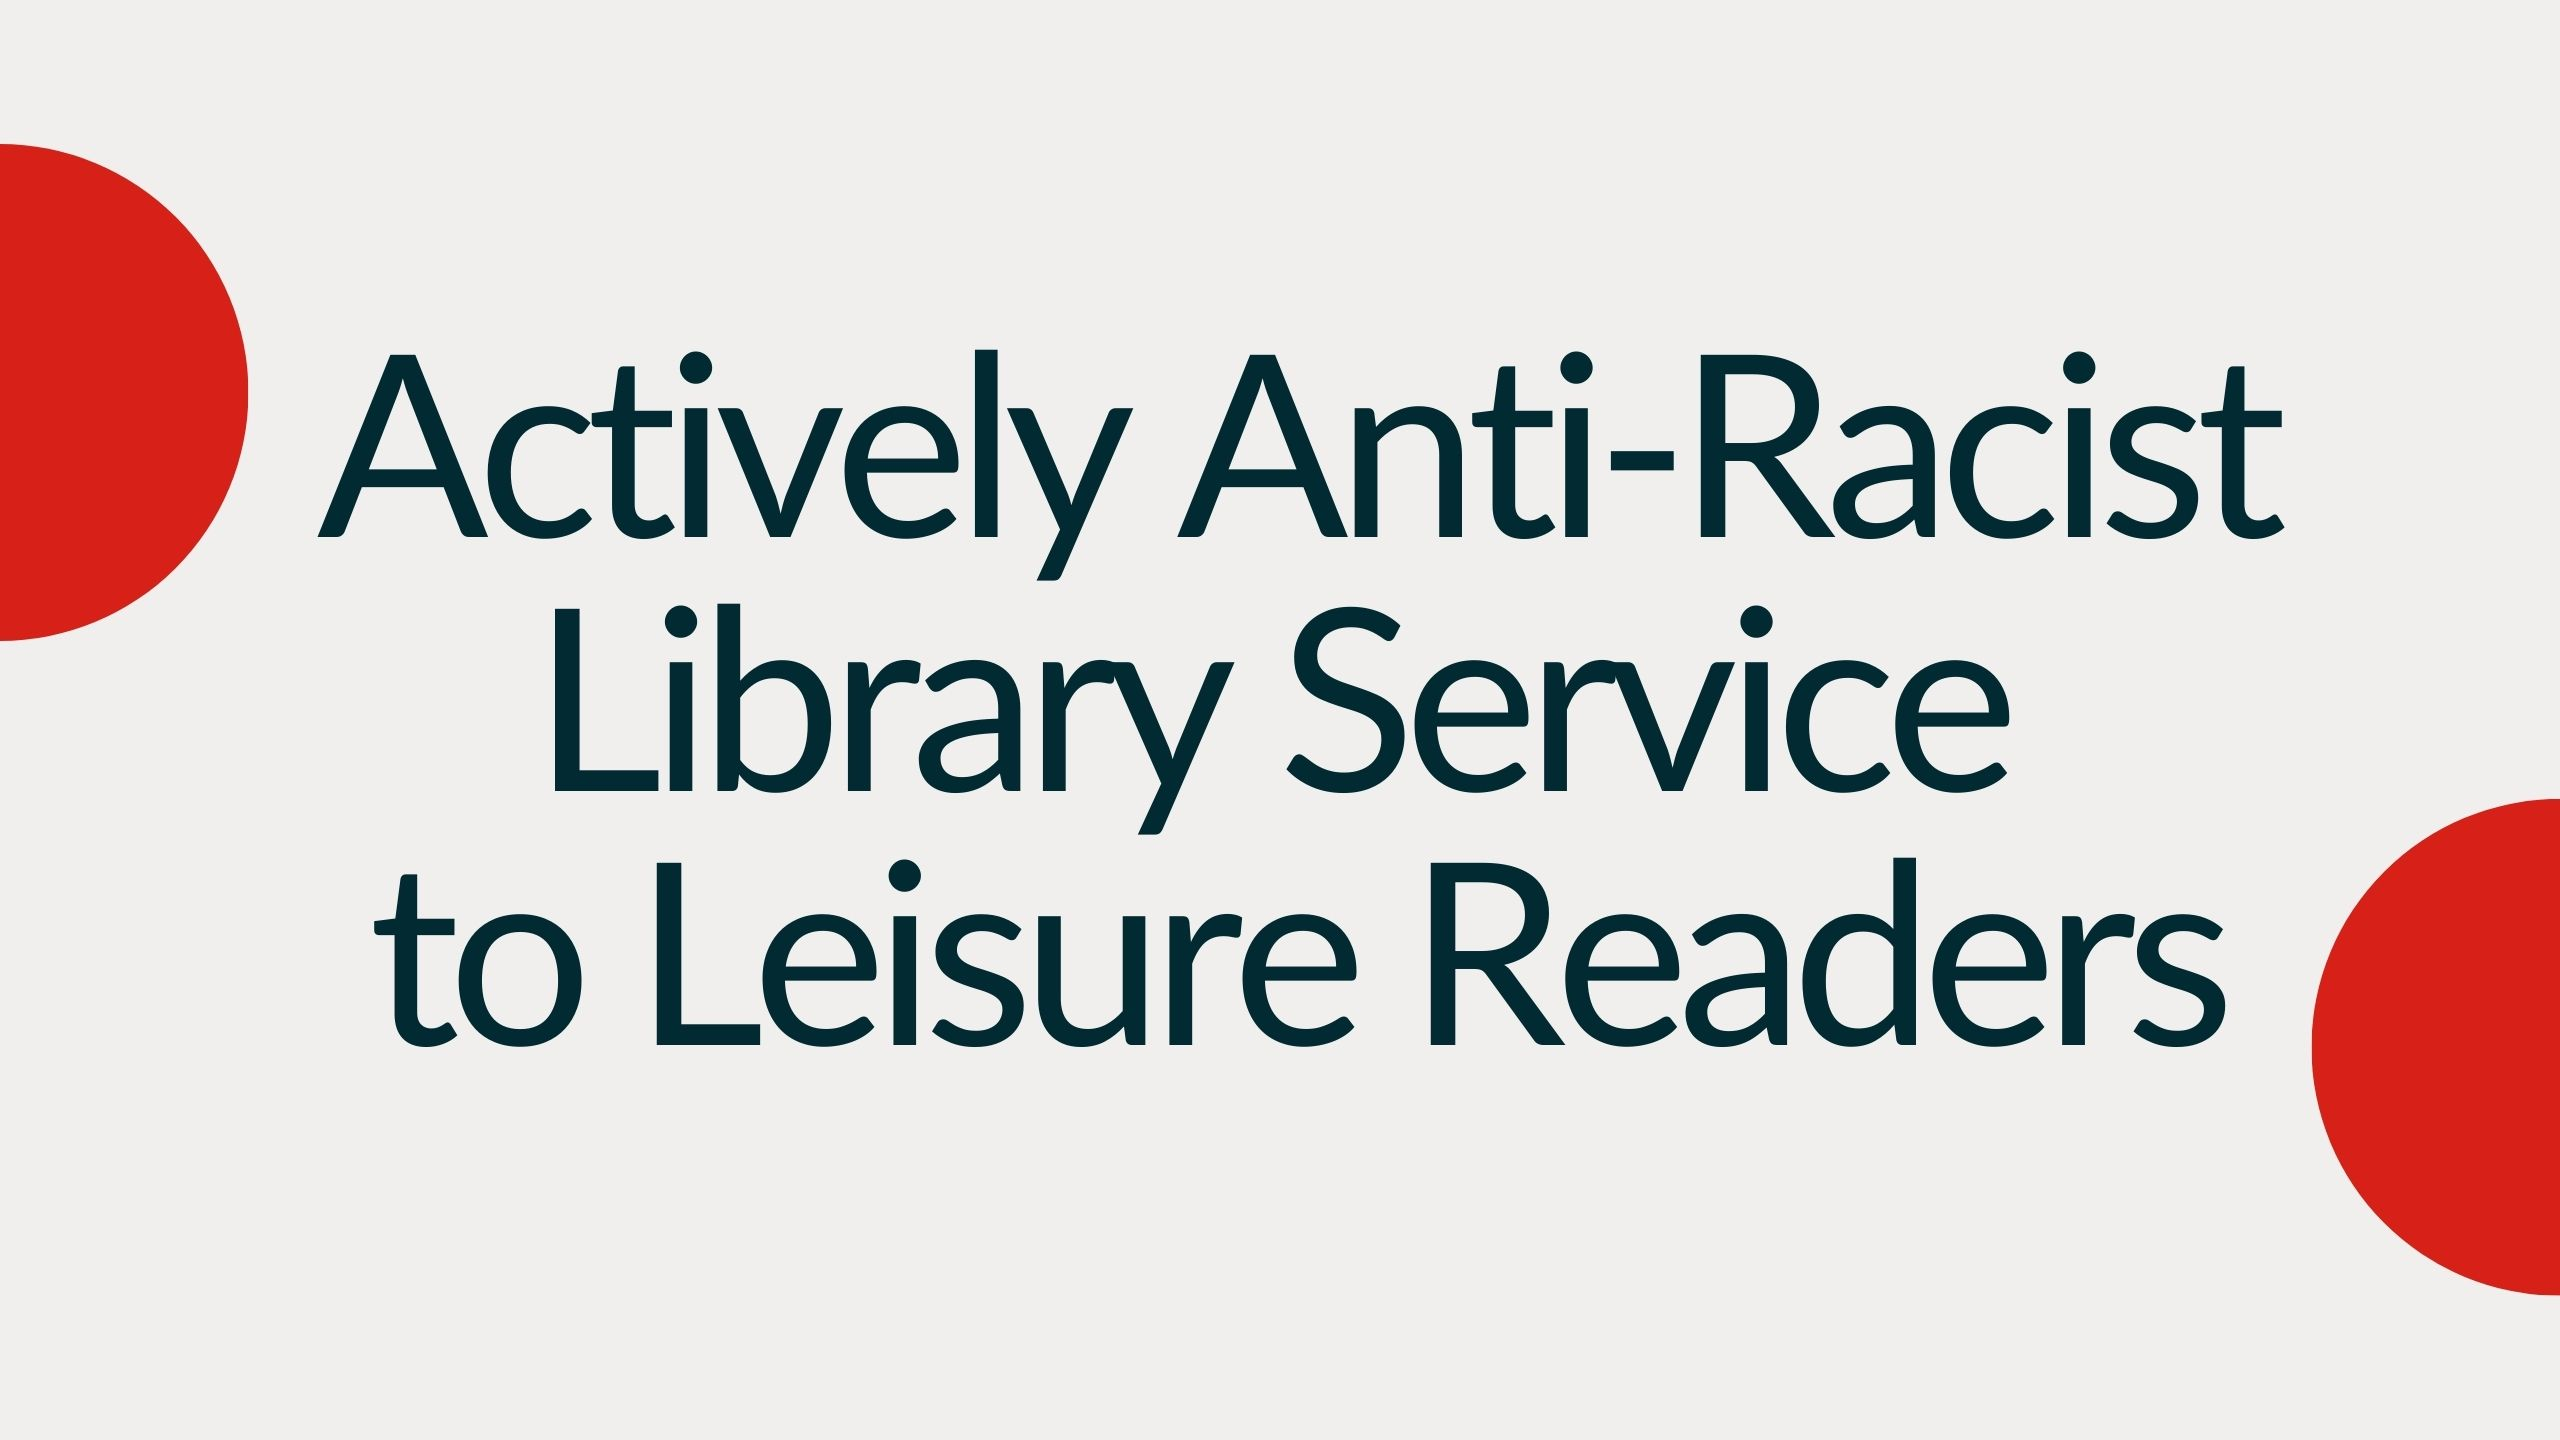 Actively Anti-Racist Library Service to Leisure Readers